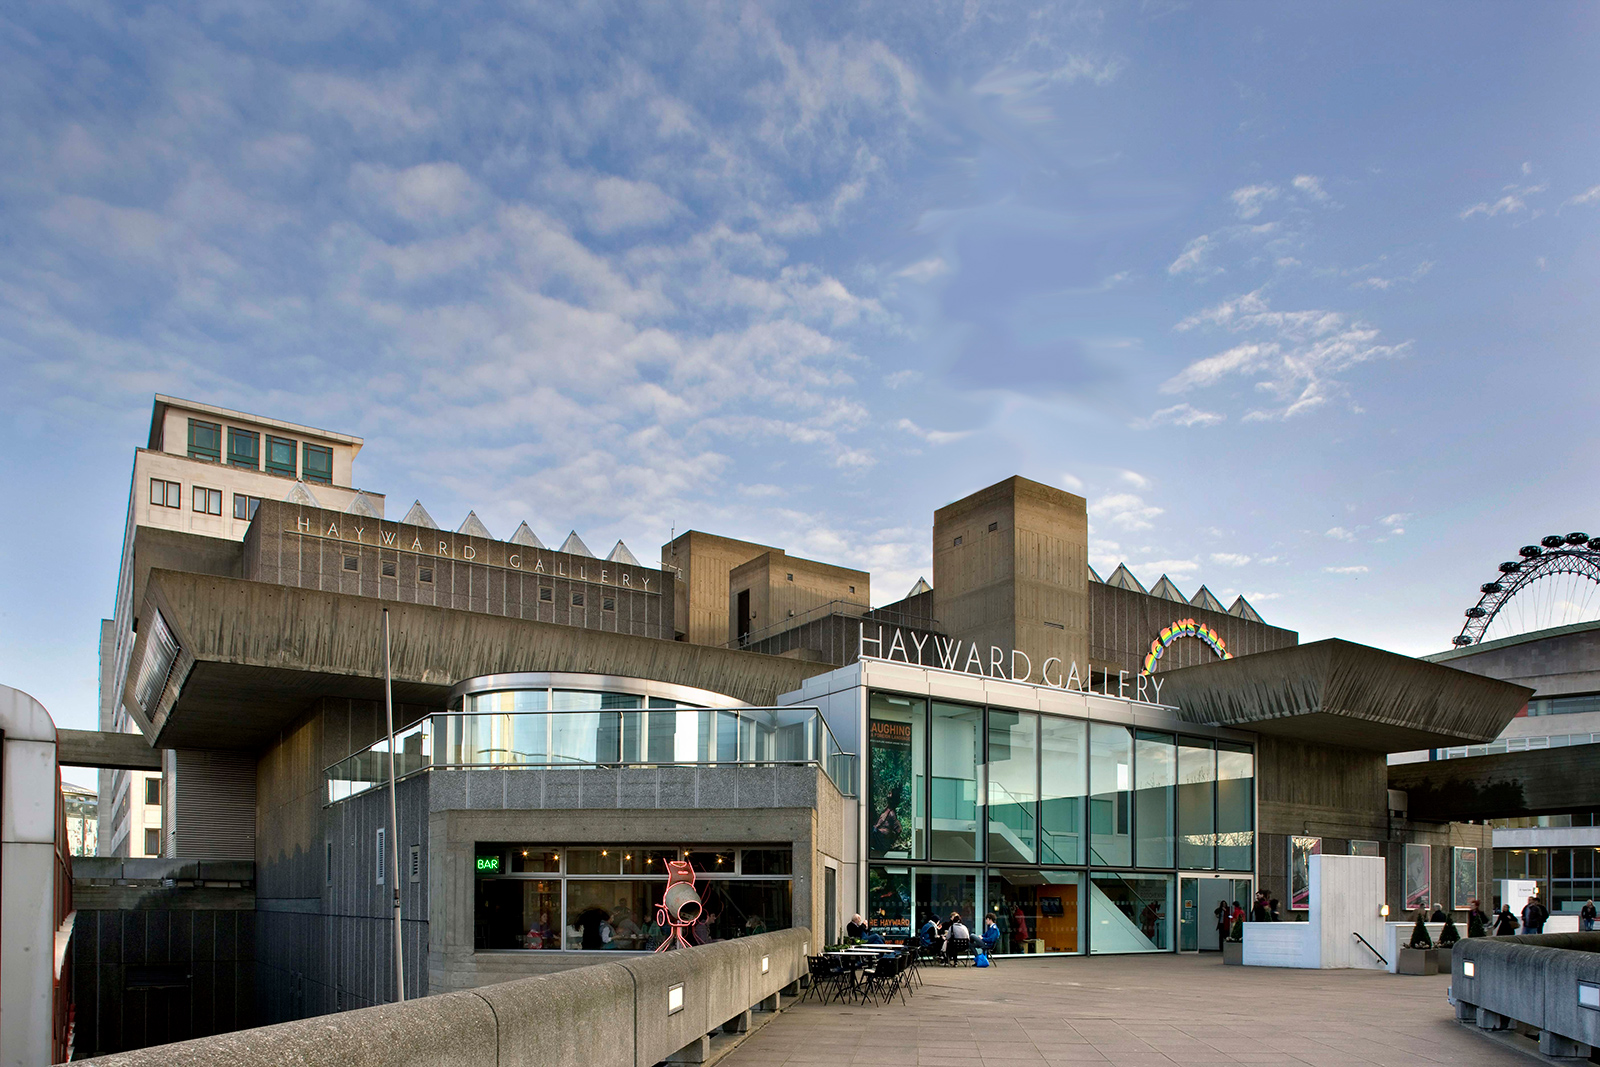 10 new museums opening in 2018: London's Hayward Gallery